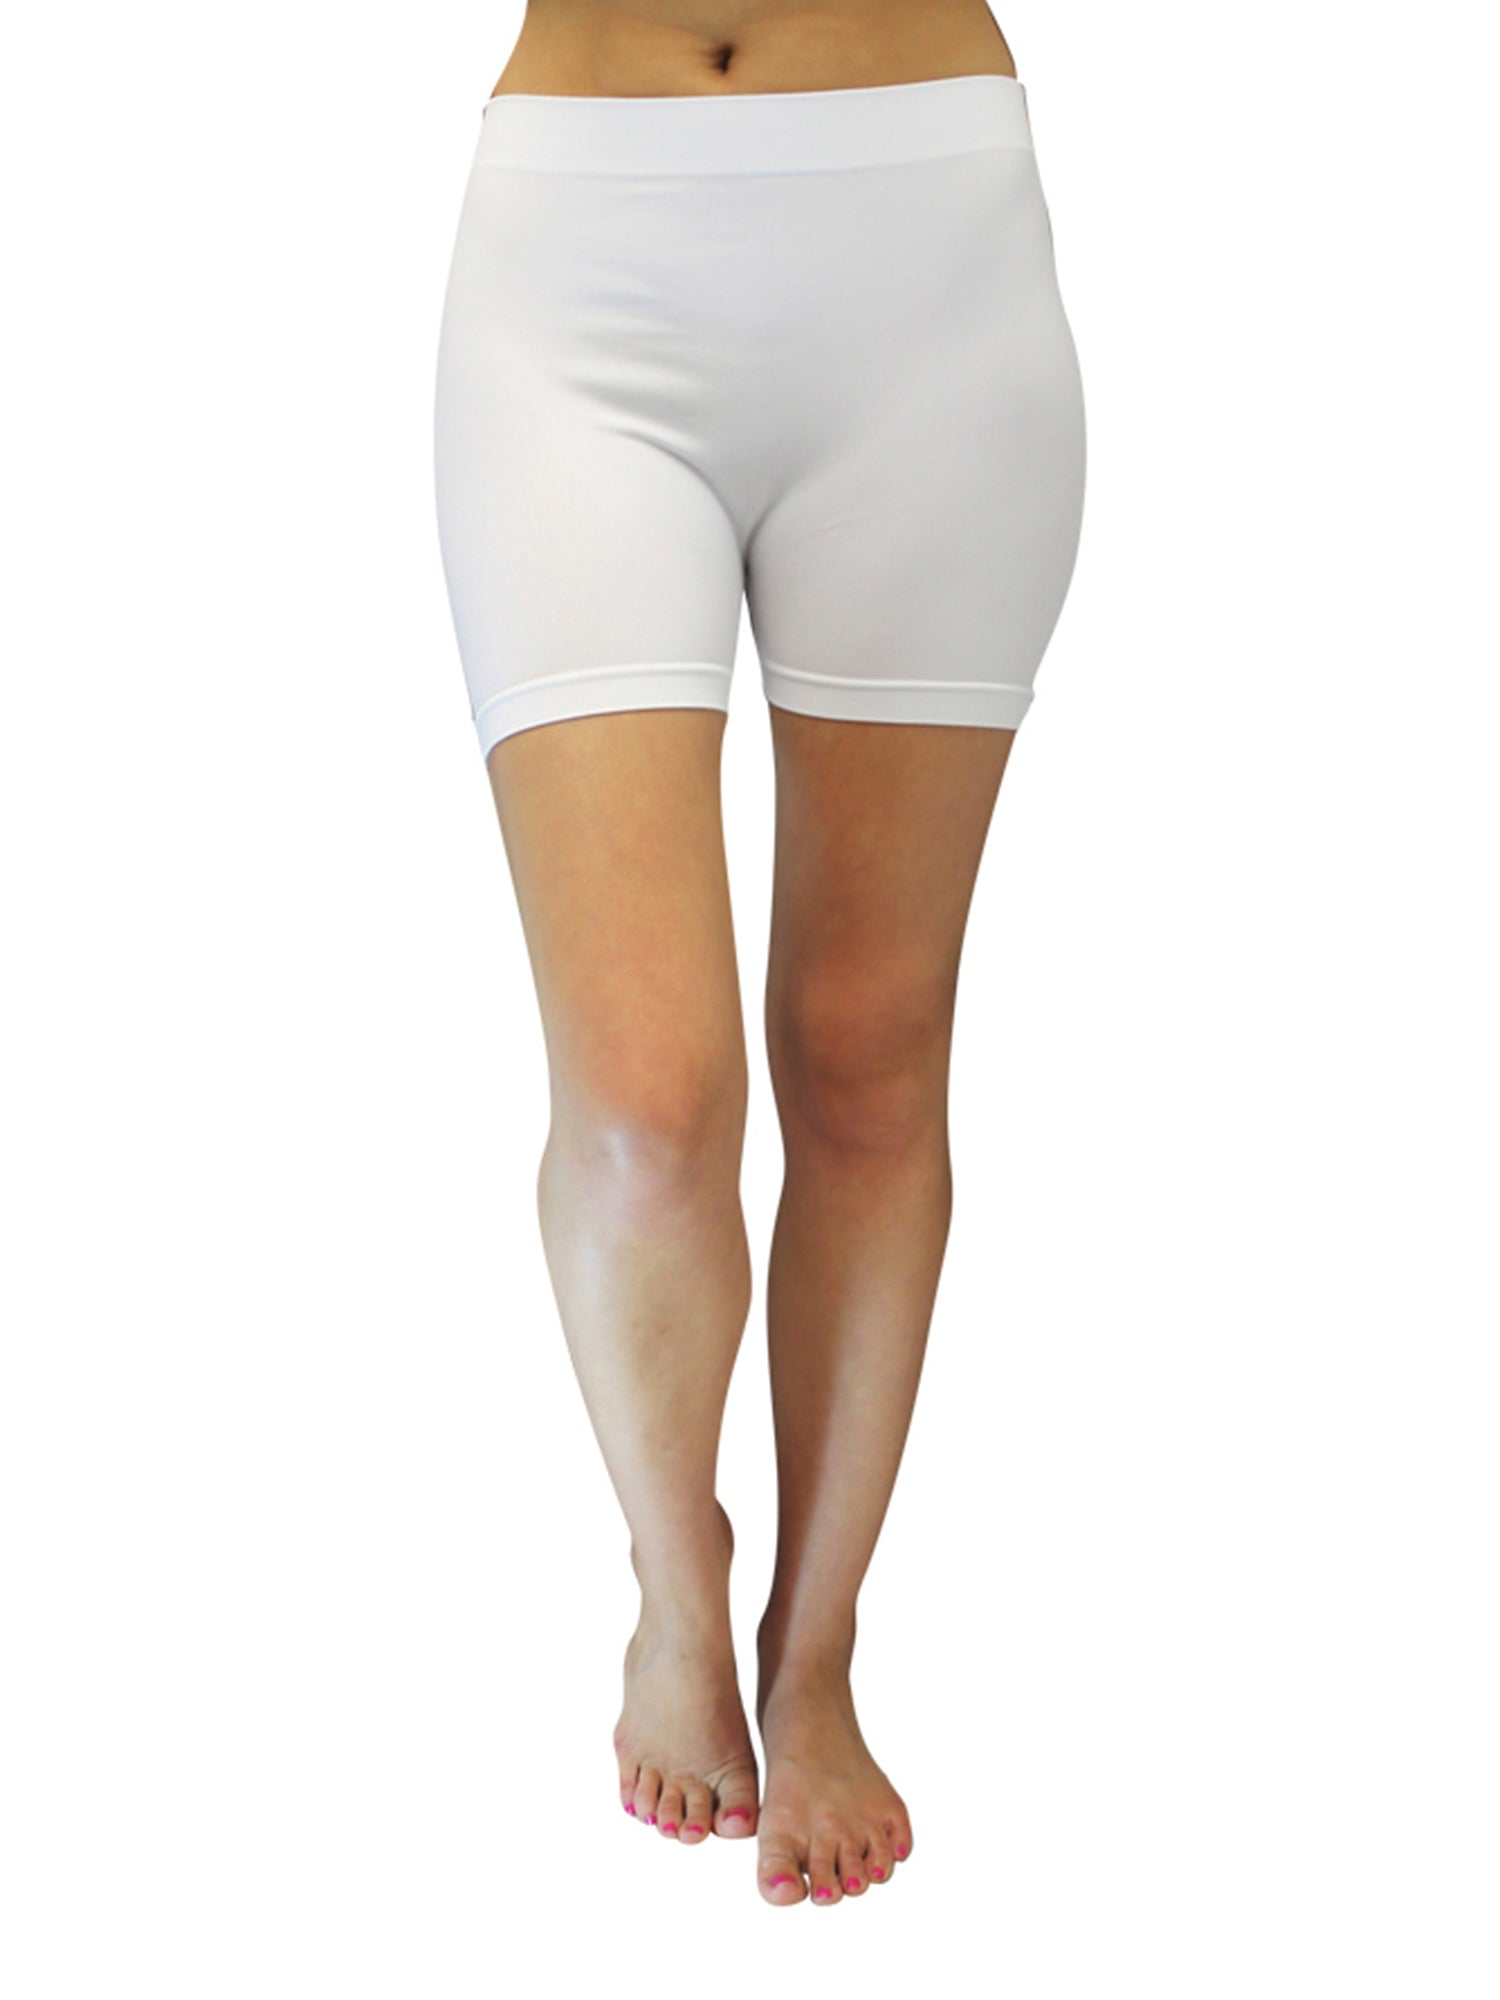 "White 12"" Long Ultra Stretchy Legging Shorts"